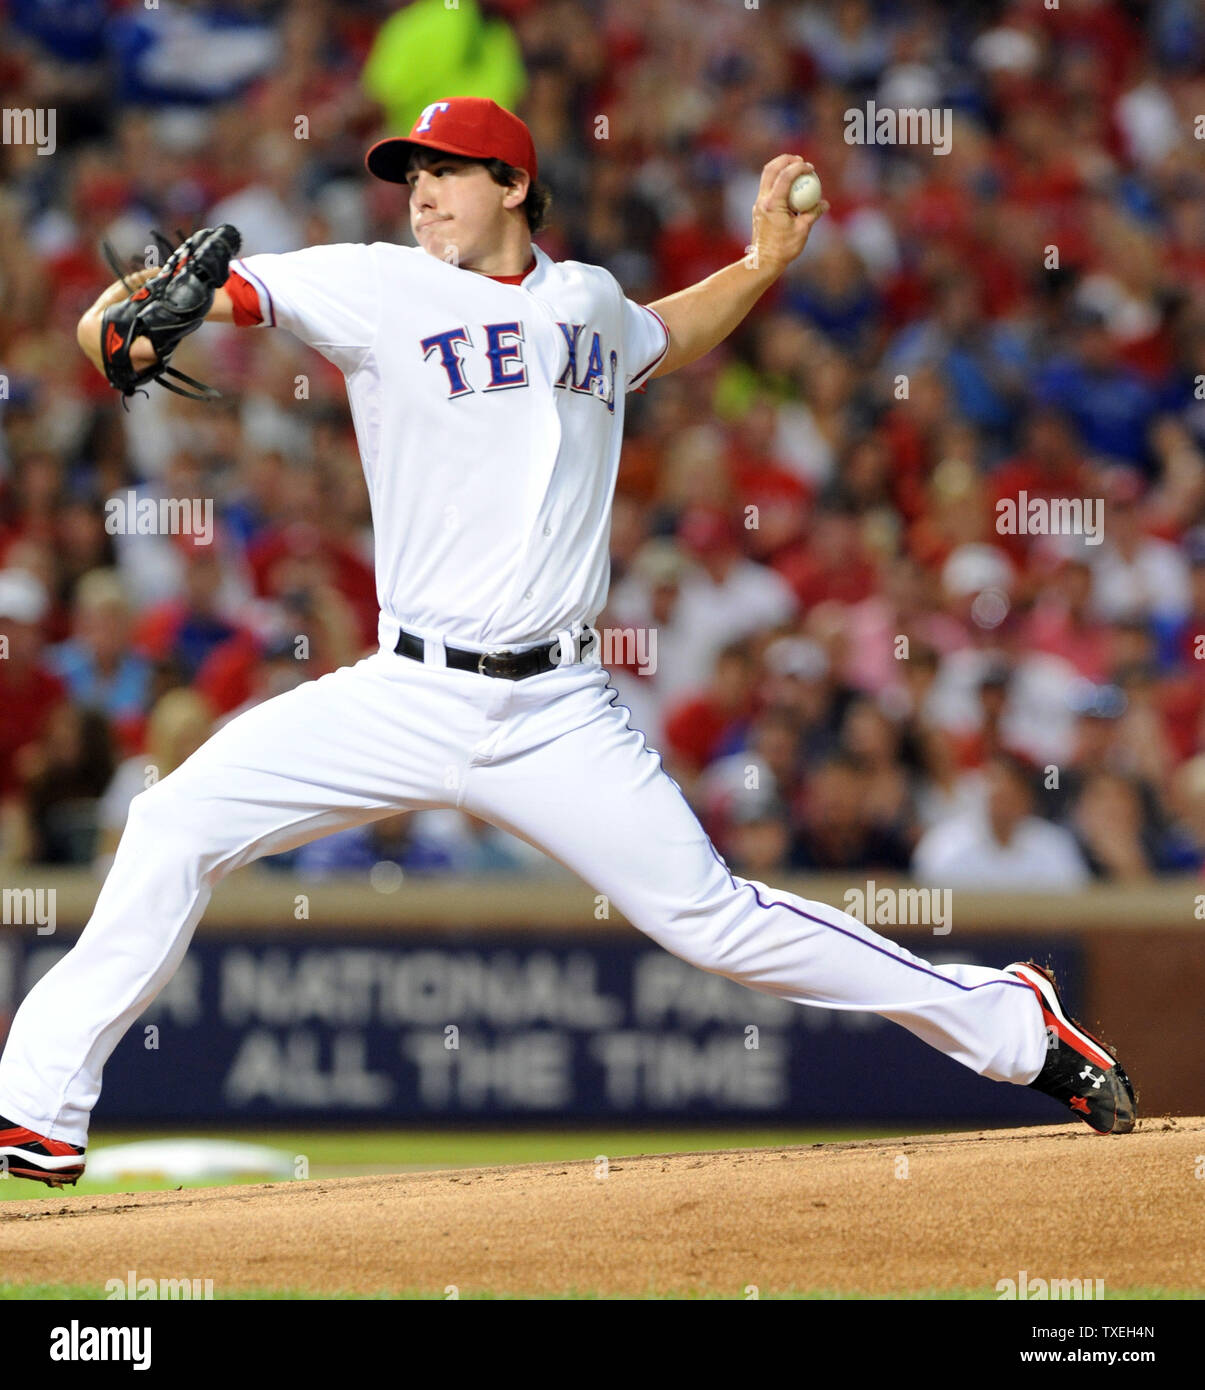 Texas Rangers starting pitcher Derek Holland throws against the Detroit Tigers in game six of the ALCS at Rangers Ballpark in Arlington on October 15, 2011 in Arlington, Texas.   The Rangers lead the best of seven series 3-2.    UPI/Ian Halperin Stock Photo